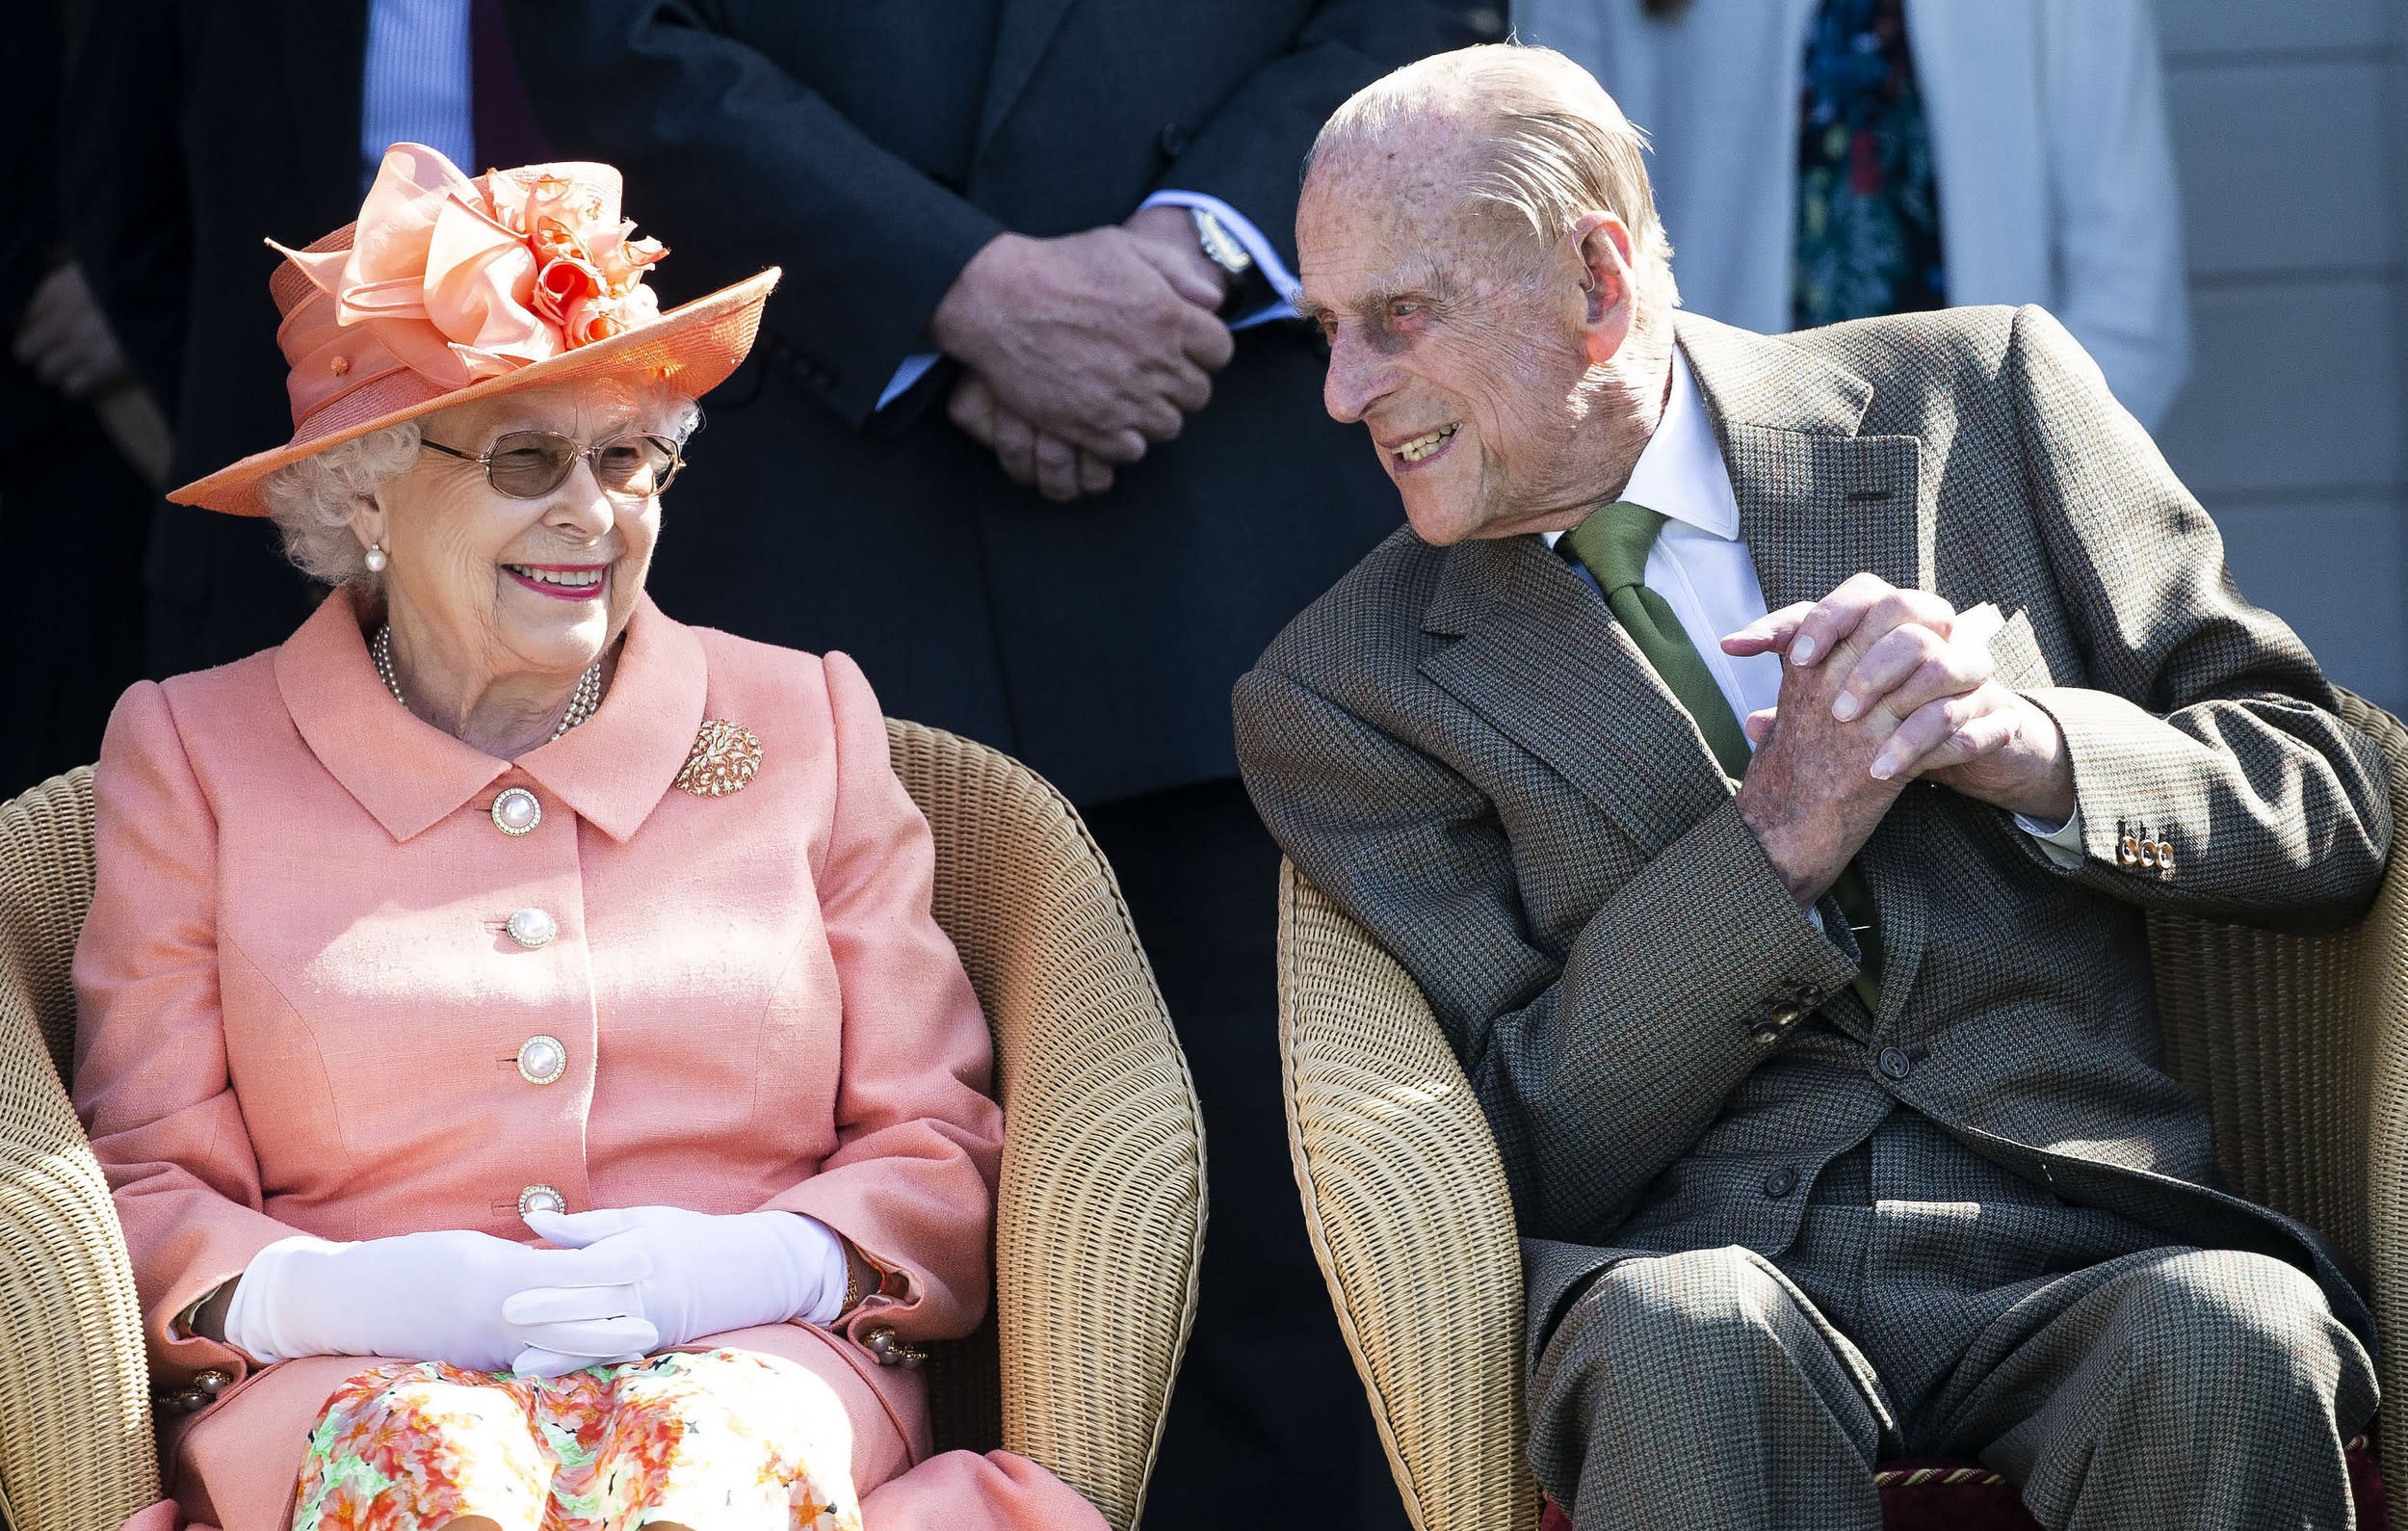 Photo by: zz/KGC-107/STAR MAX/IPx 2018 6/24/18 Her Majesty Queen Elizabeth II and Prince Philip The Duke of Edinburgh at the Royal Windsor Cup Final at the Guards Polo Club and the British Driving Society Annual Show at Smith's Lawn in Windsor Great Park. (Windsor, Berkshire, England, UK)